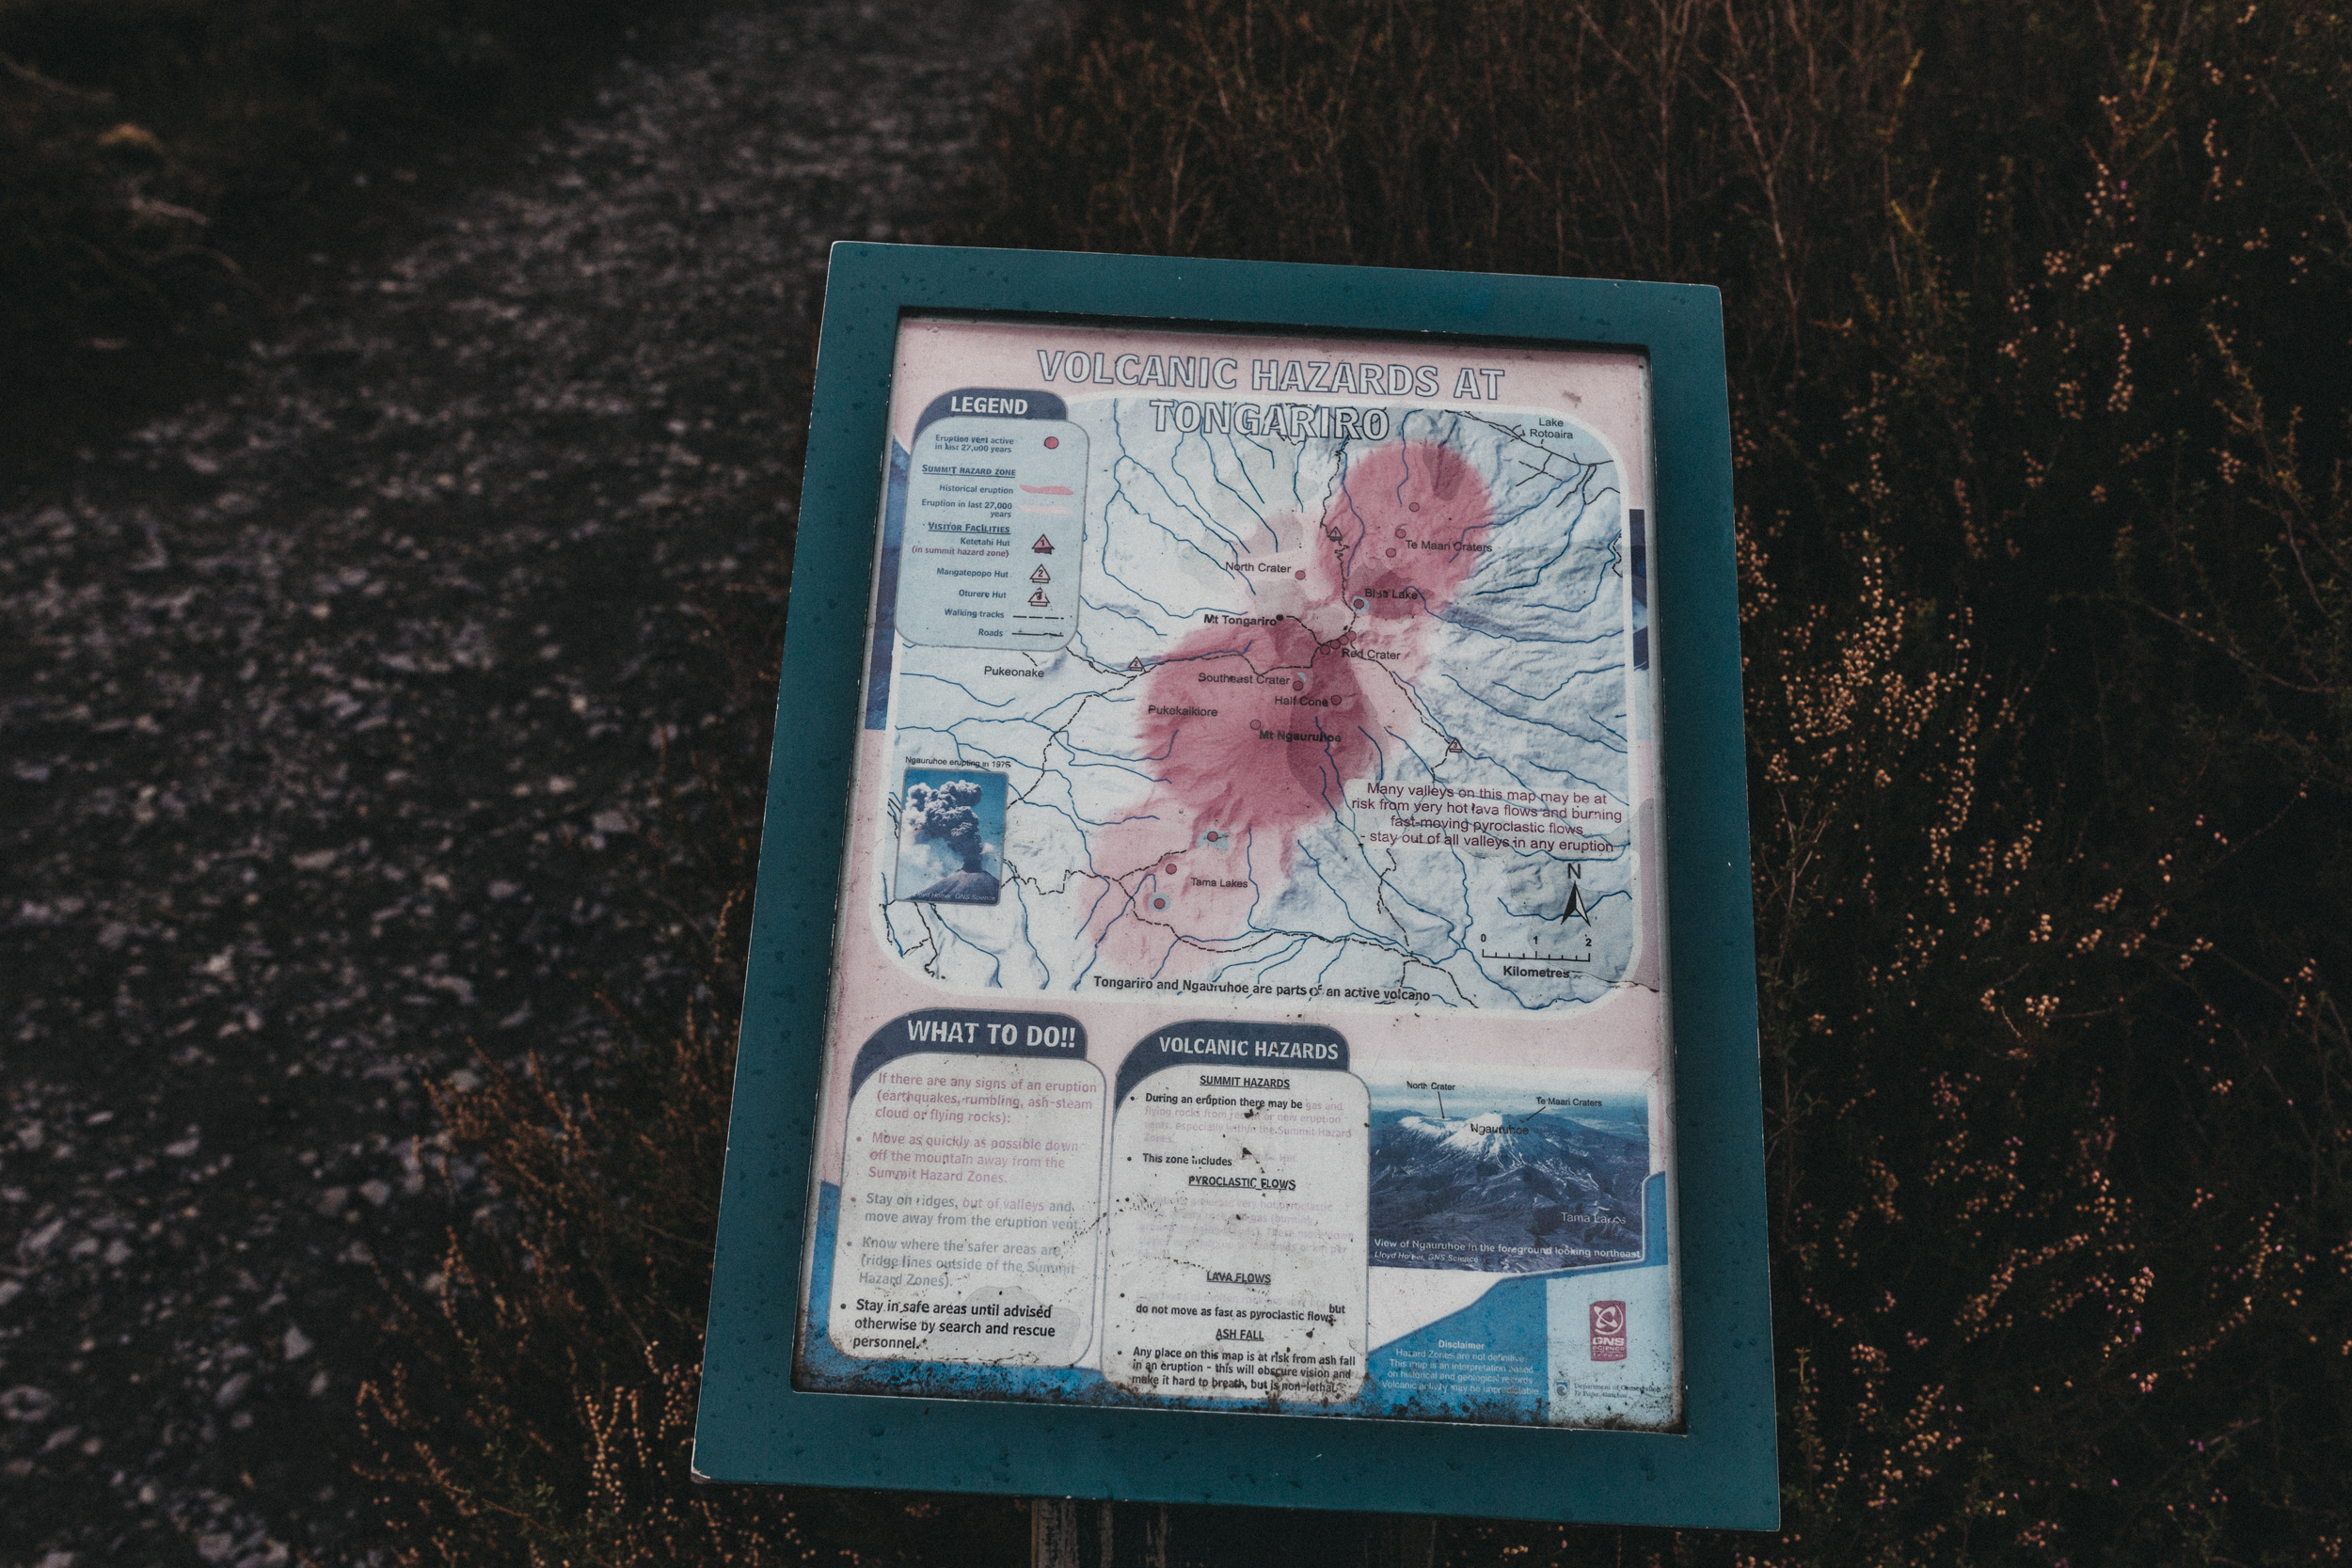 Day Four: map warning us of the dangers of being in an active volcanic zone, and what to do if there is an eruption (the last major eruption was 2012).